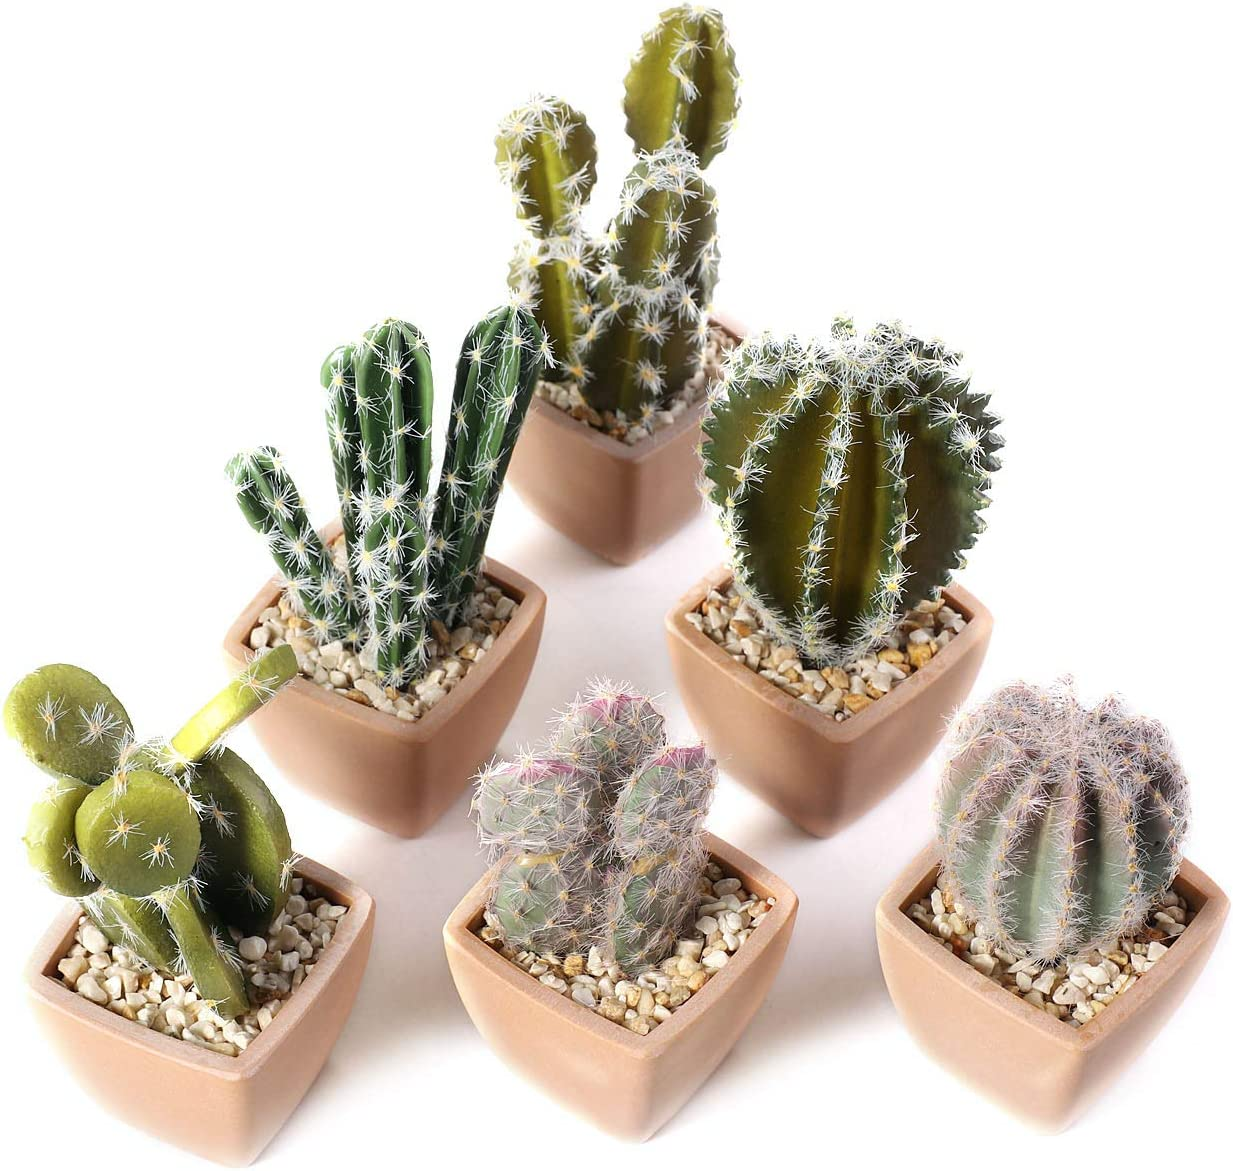 T4U Assorted Artificial Succulent Potted Plants Decorative Plastic Faux Cactus with Pots, Pack of 6